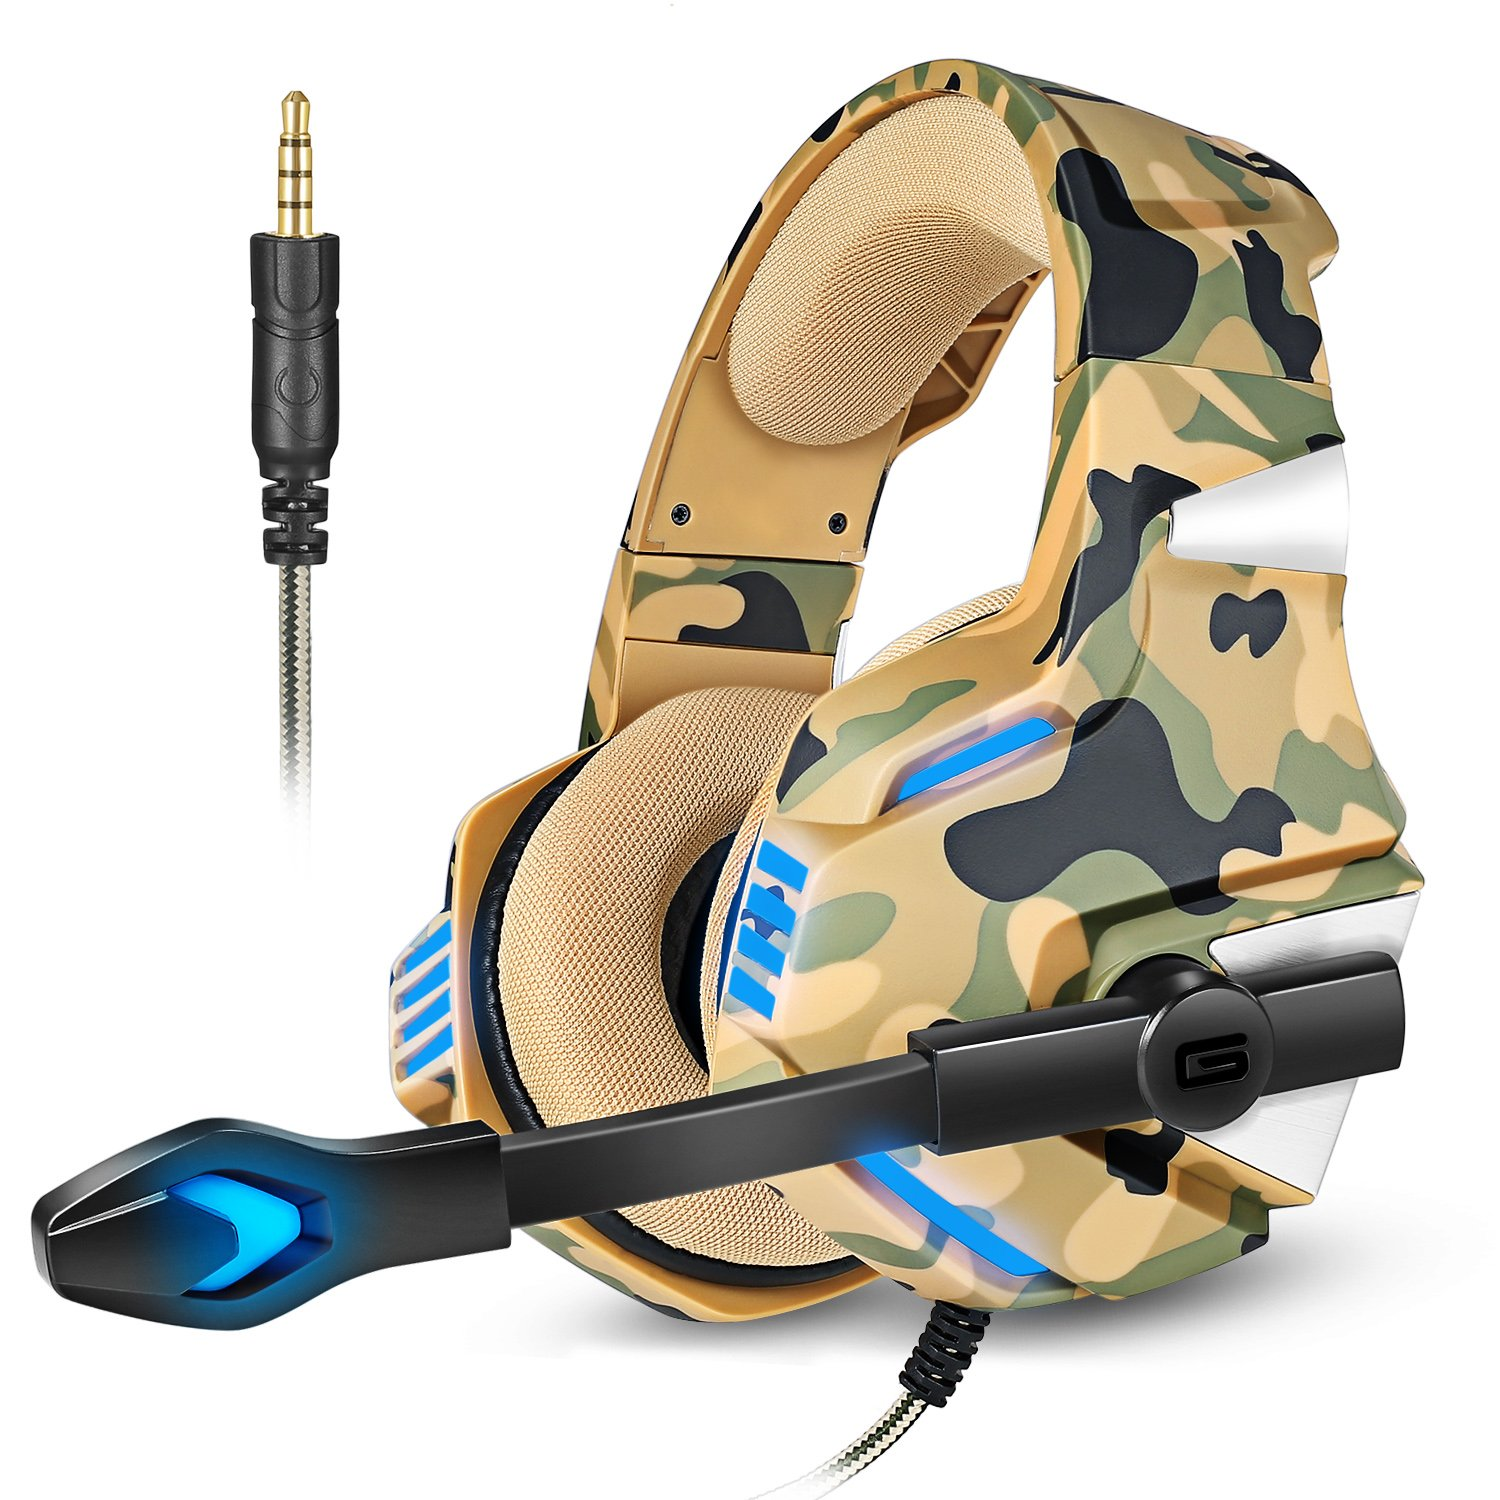 Gaming Headset for PS4 Xbox One, Micolindun Over Ear Gaming Headphones with Mic Stereo Surround Noise Reduction LED Lights Volume Control for Laptop, PC, iPad, Smartphones